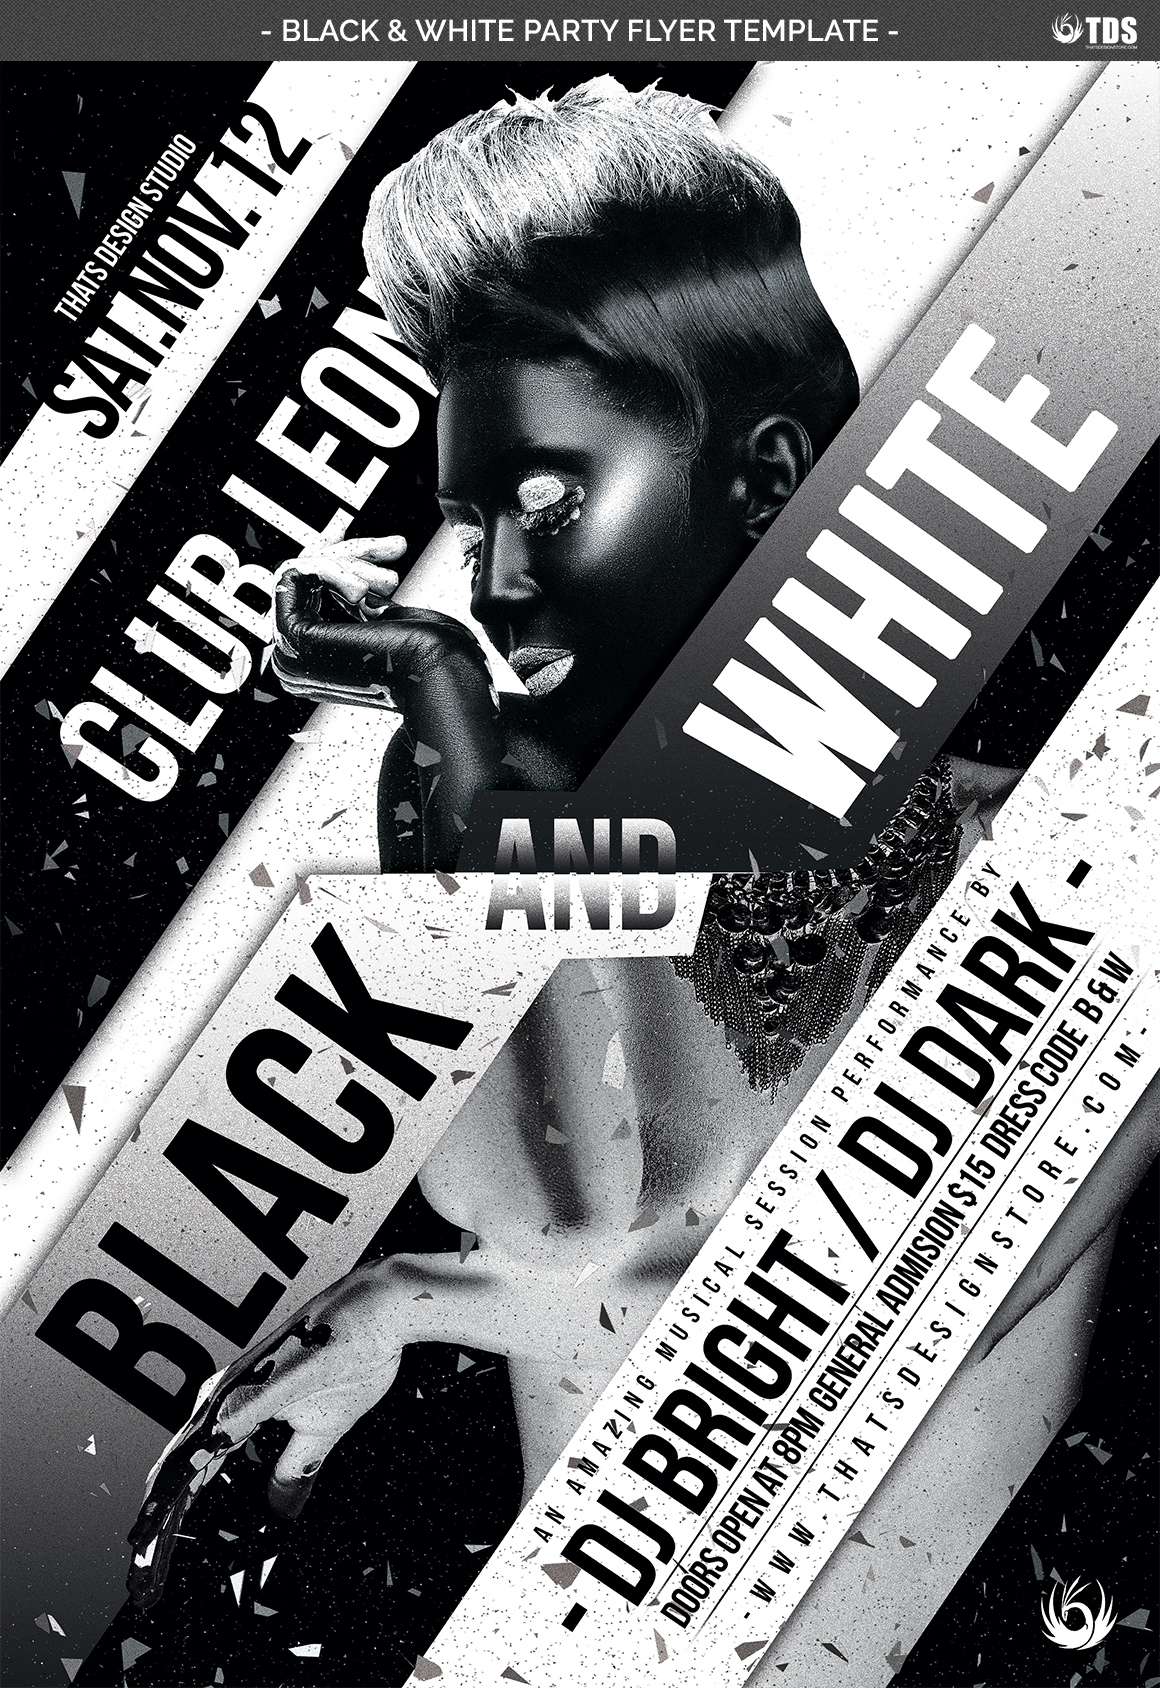 Black and White Party Flyer Template example image 4